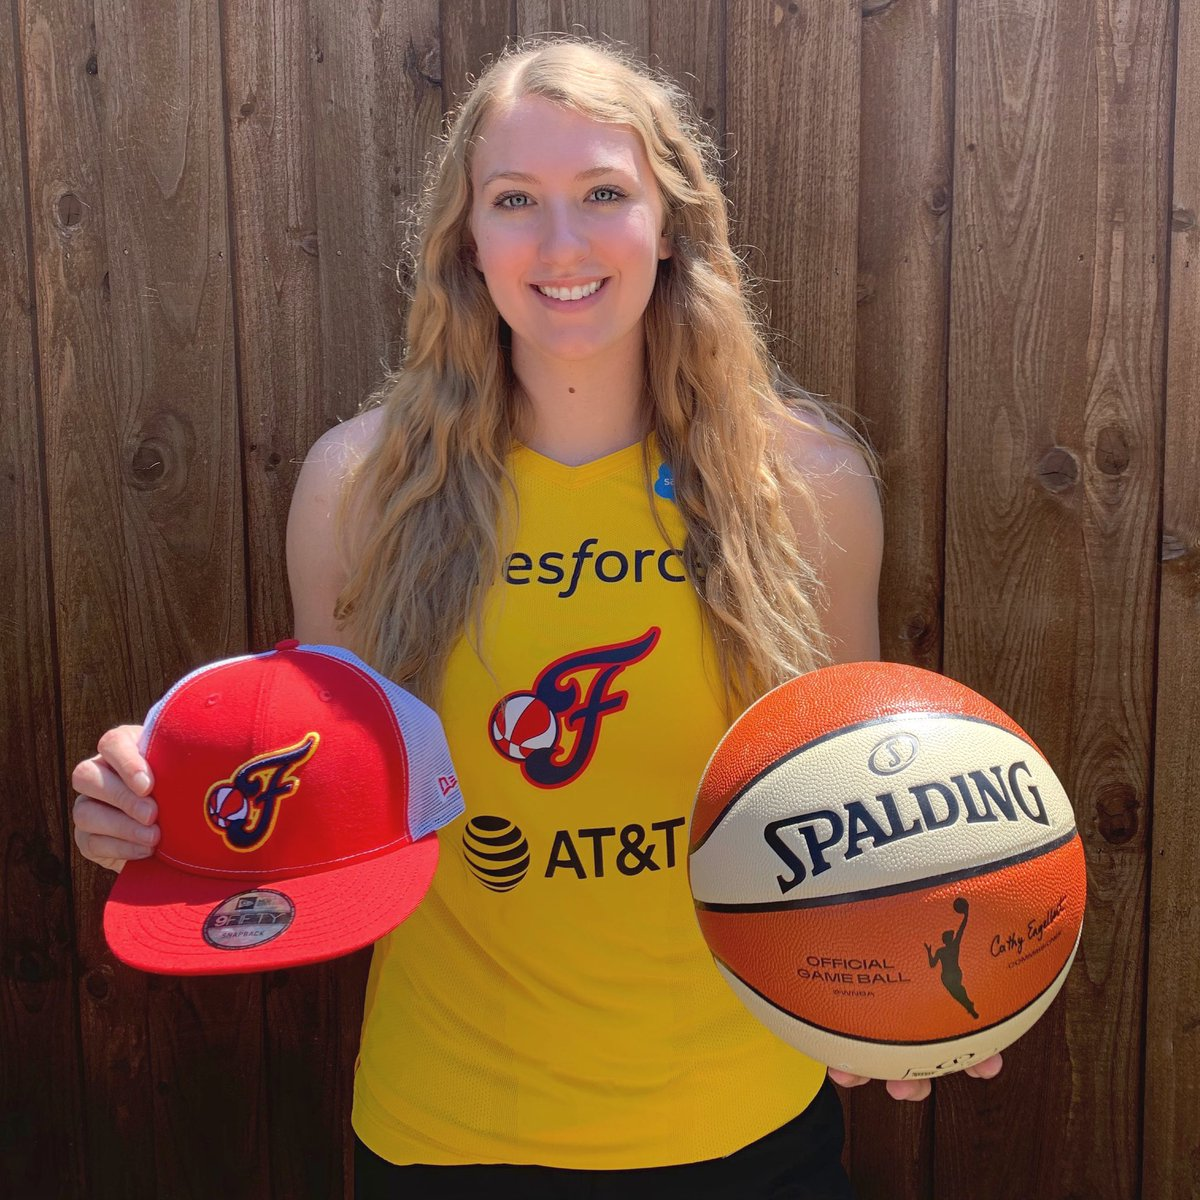 I can't wait to start this next chapter of my life! Go Fever!💛 #WNBA #IndianaFever https://t.co/7CqnK1QATB